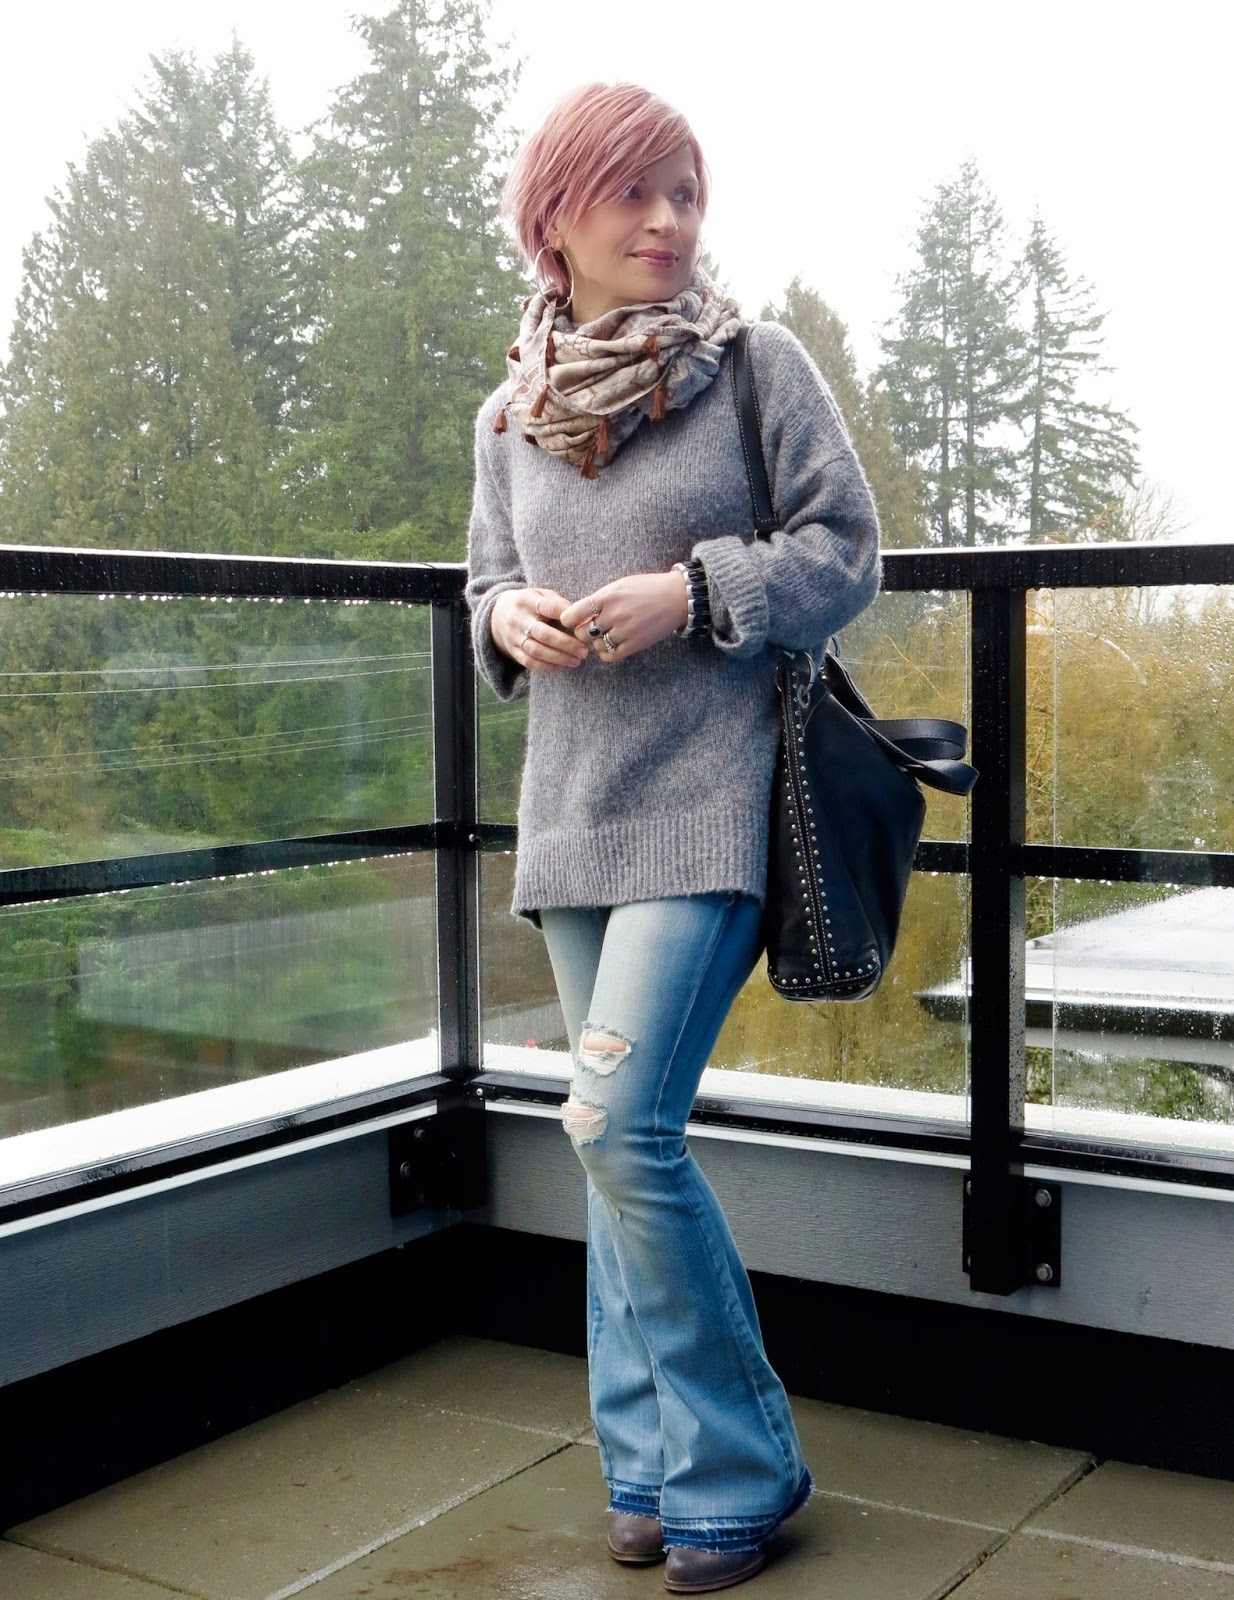 styling distressed flare jeans with a woolly turtleneck and tassel-embellished scarf